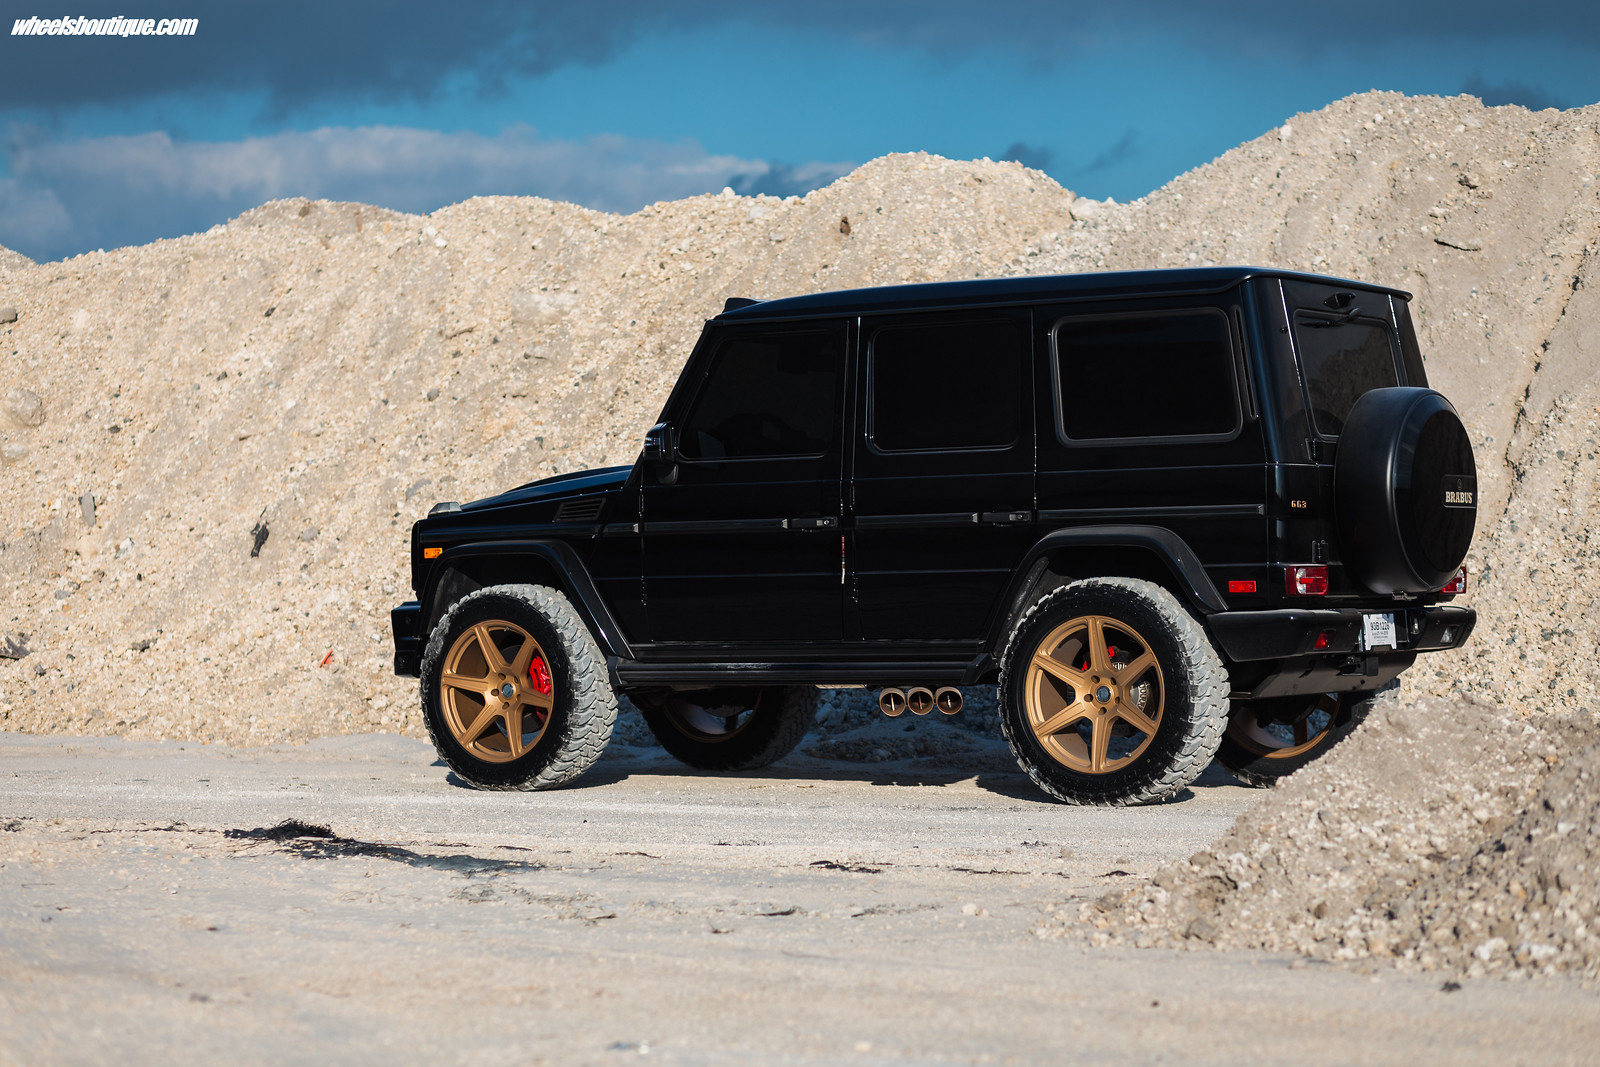 the brabus brawler another lifted mercedes g63 by teamwb. Black Bedroom Furniture Sets. Home Design Ideas